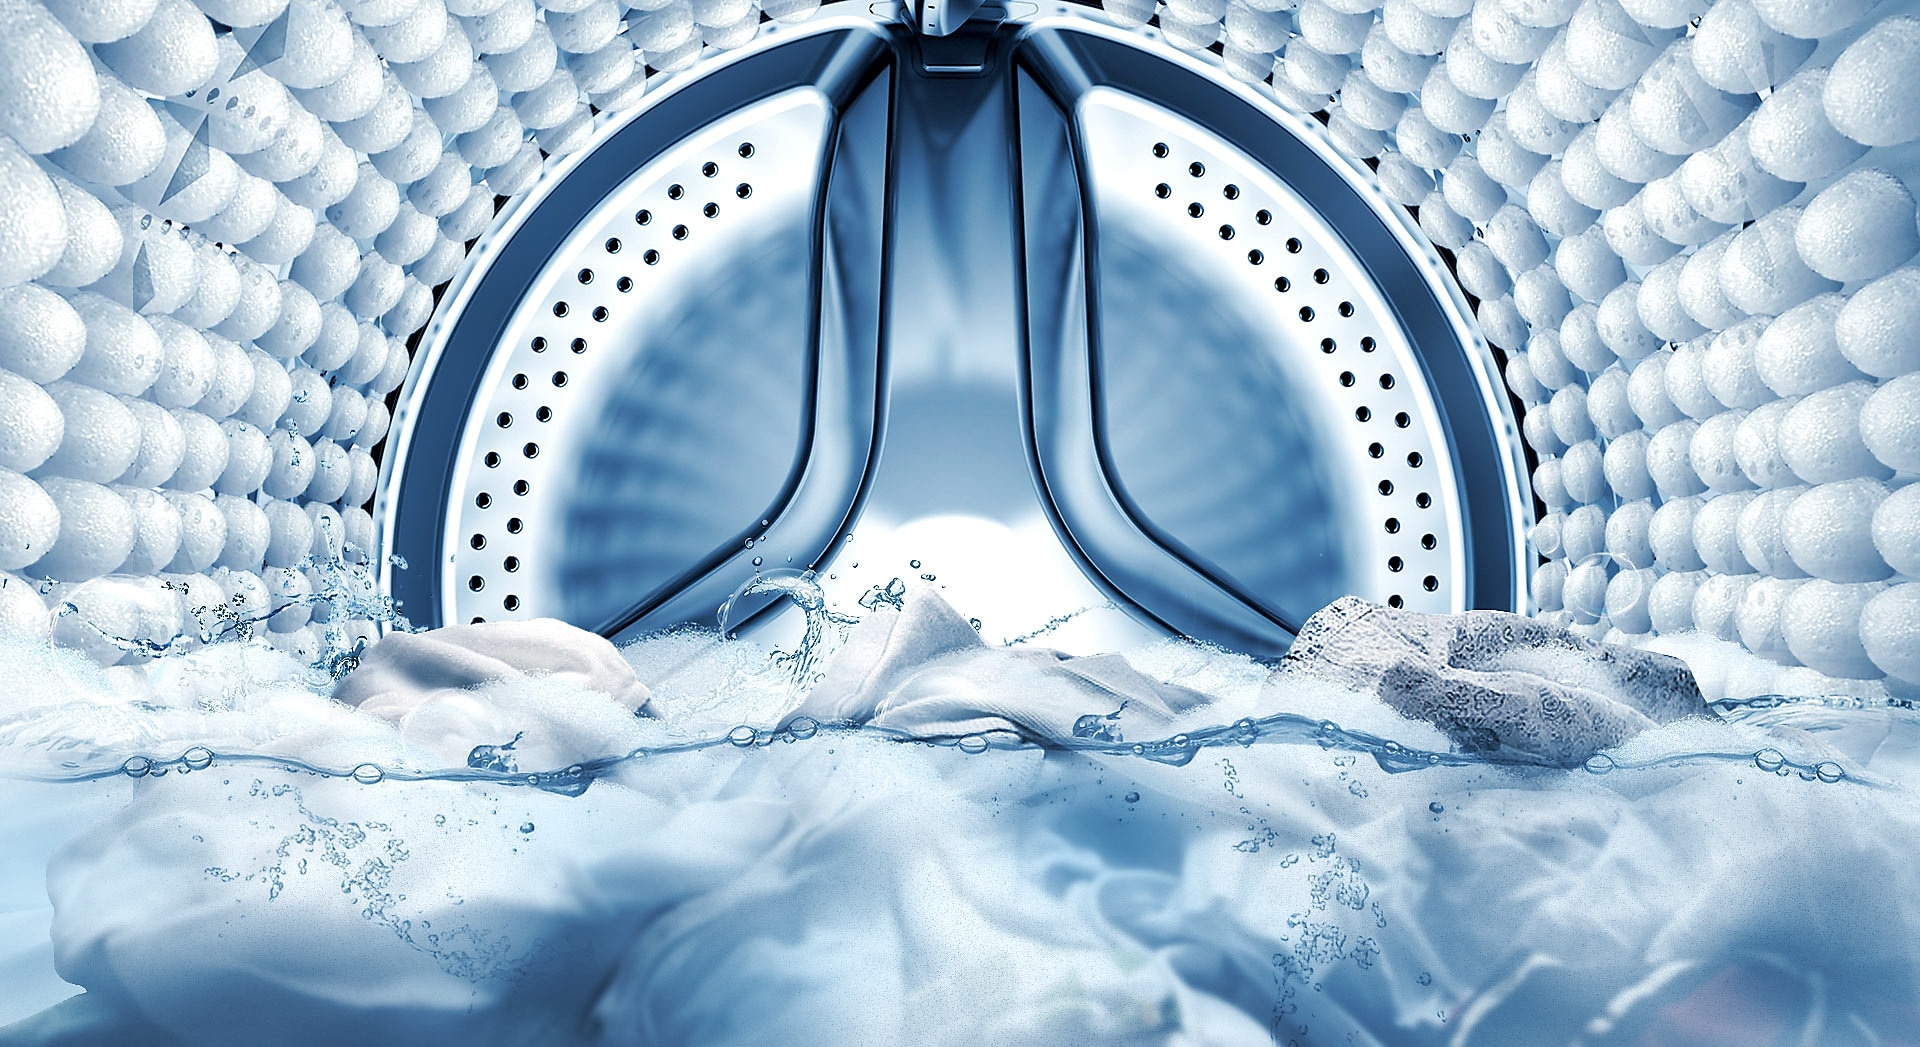 An image showing the inside of the machine's drum, as the bubble soak function removes stains from clothes.